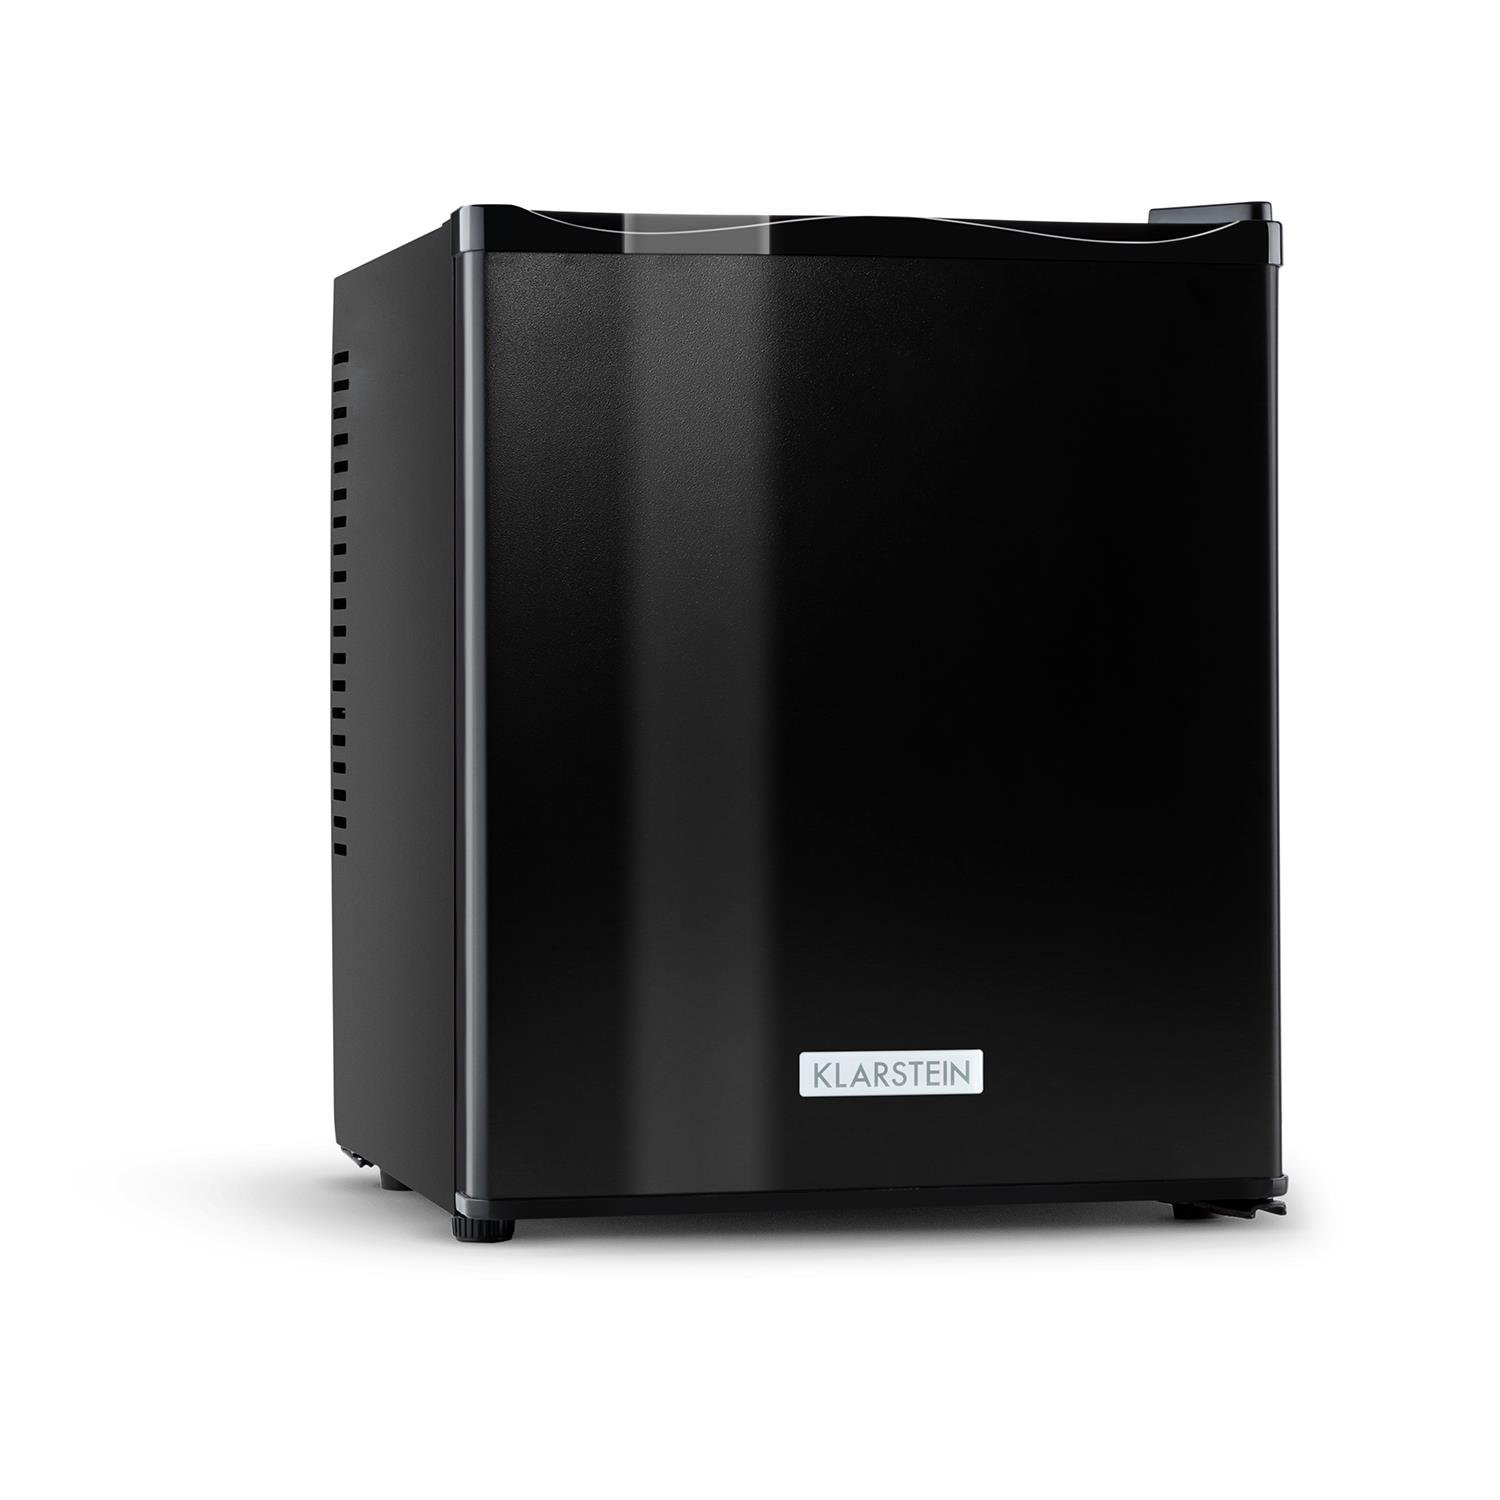 Klarstein MKS-11 Mini Bar Fridge • Cooler • Refrigerator • Ultra-Compact Dimensions • Ideal for Commercial Use in Hotels Hostels and Bars or Living Rooms and Gardens • 25 Litres • 2 Shelves • 2 Side Panels for Bottles and Cans • Black [Energy Class B] 100